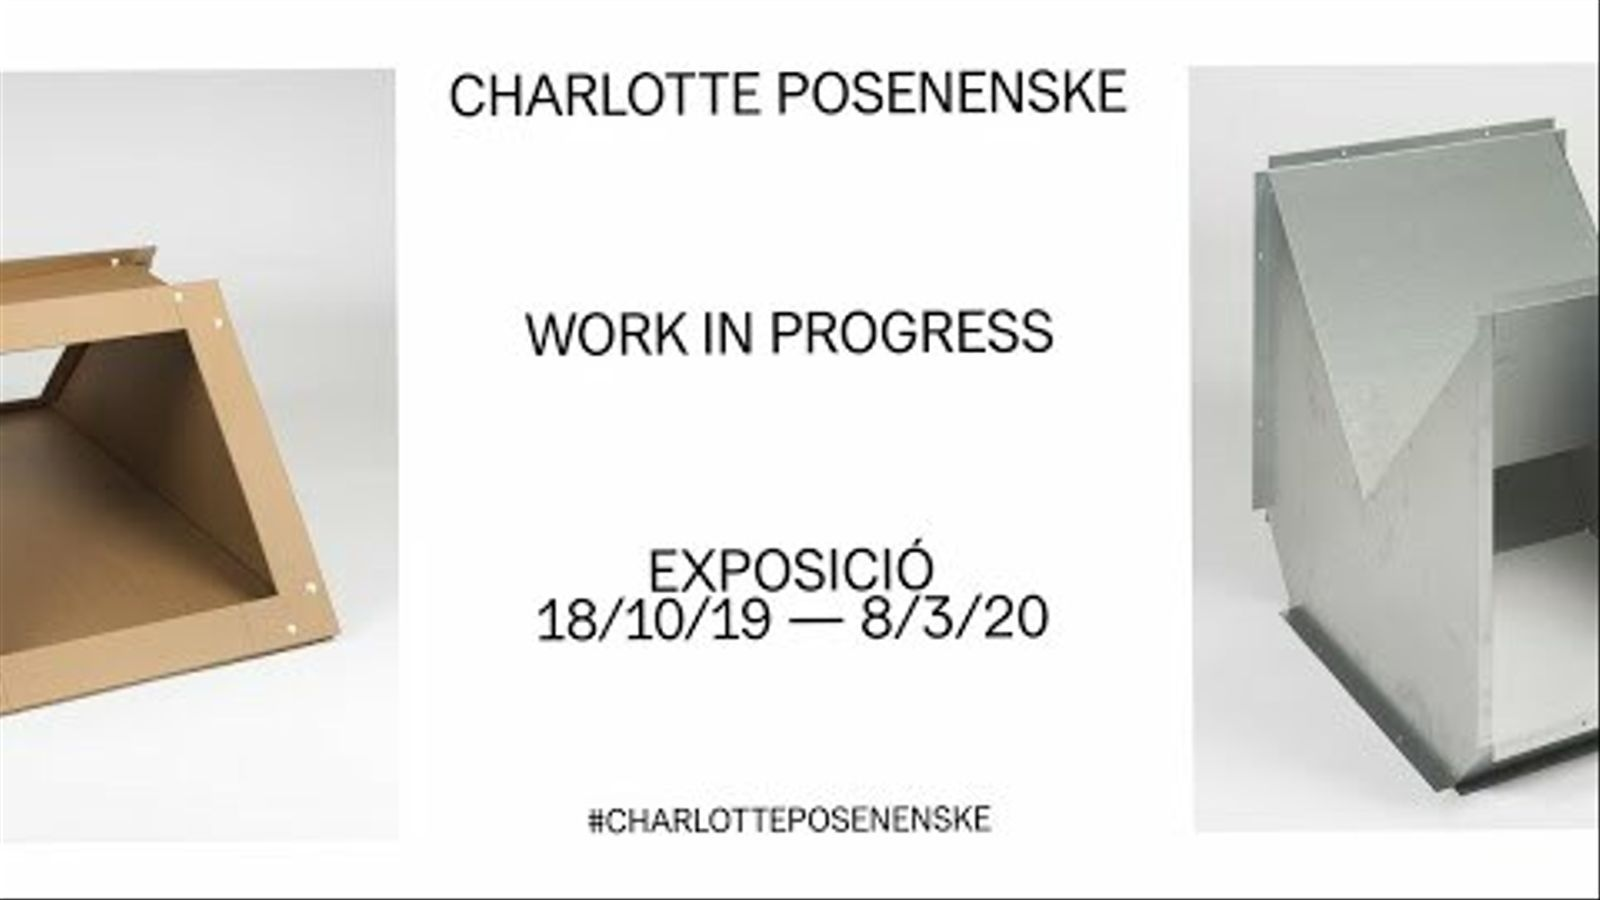 Charlotte Posenenske: Work in Progress